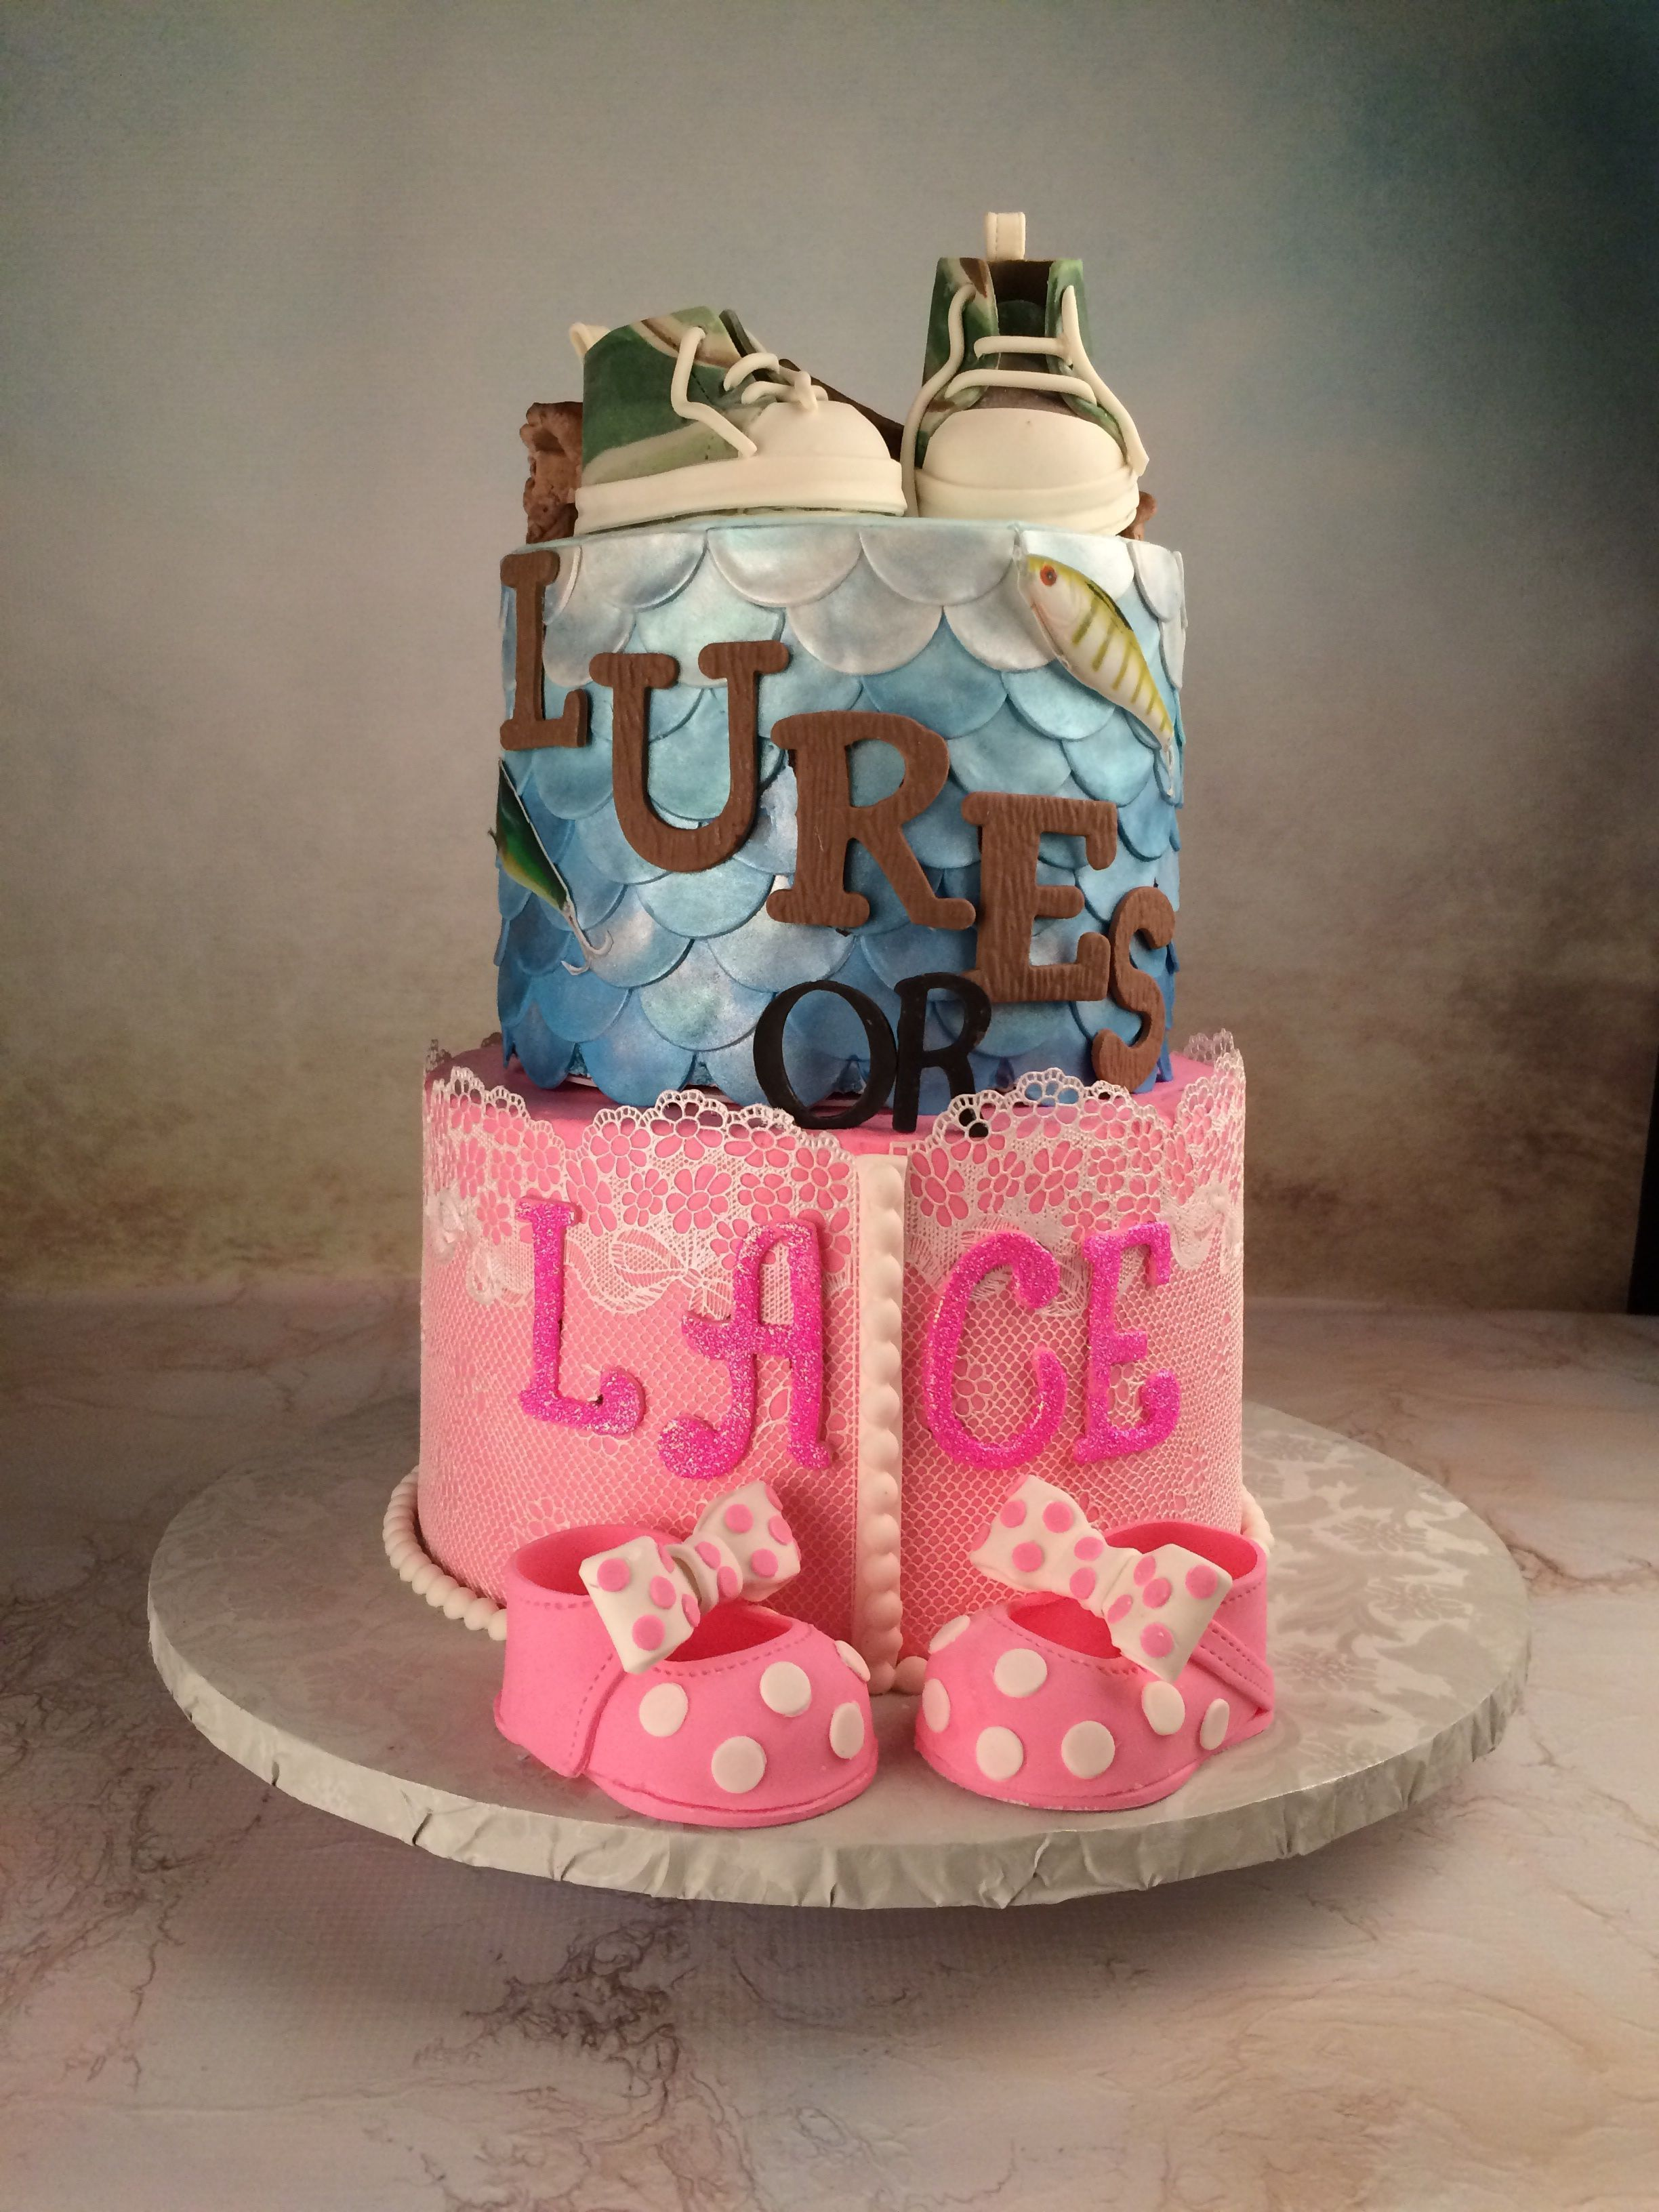 Lures Or Lace Themed Gender Reveal Cake Baby Reveal Cakes Gender Reveal Cake Country Gender Reveal